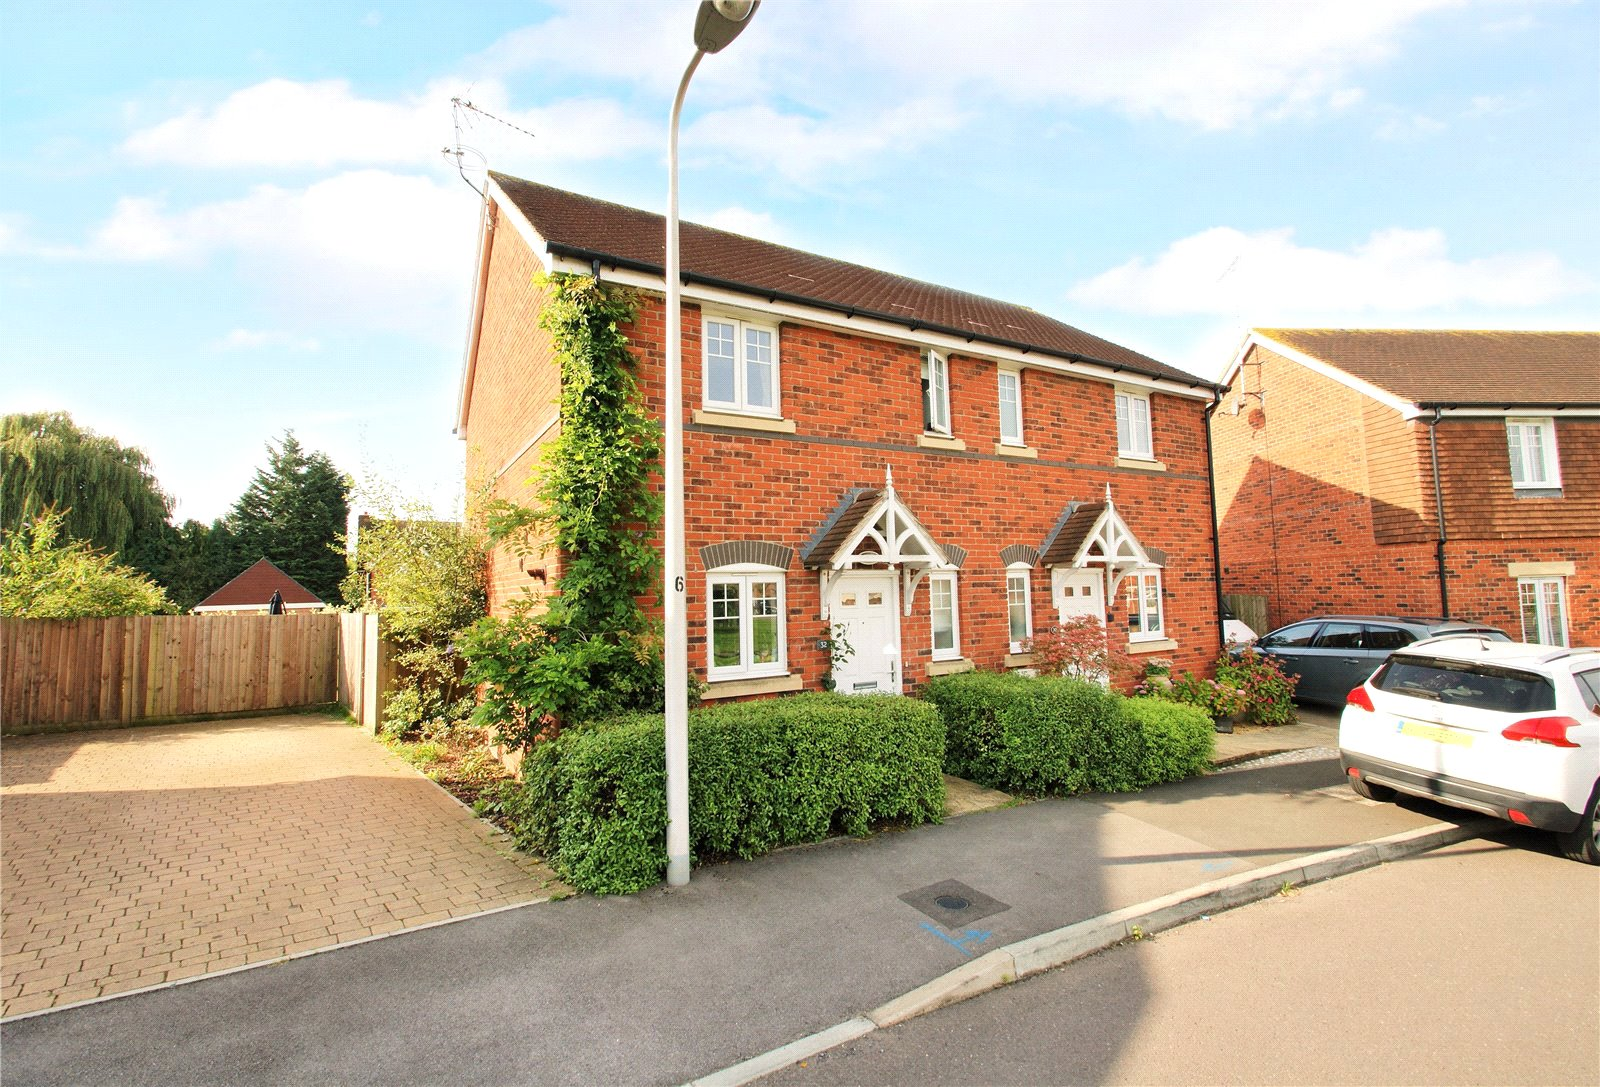 2 Bedrooms Semi Detached House for sale in Carina Drive, Wokingham, Berkshire, RG40